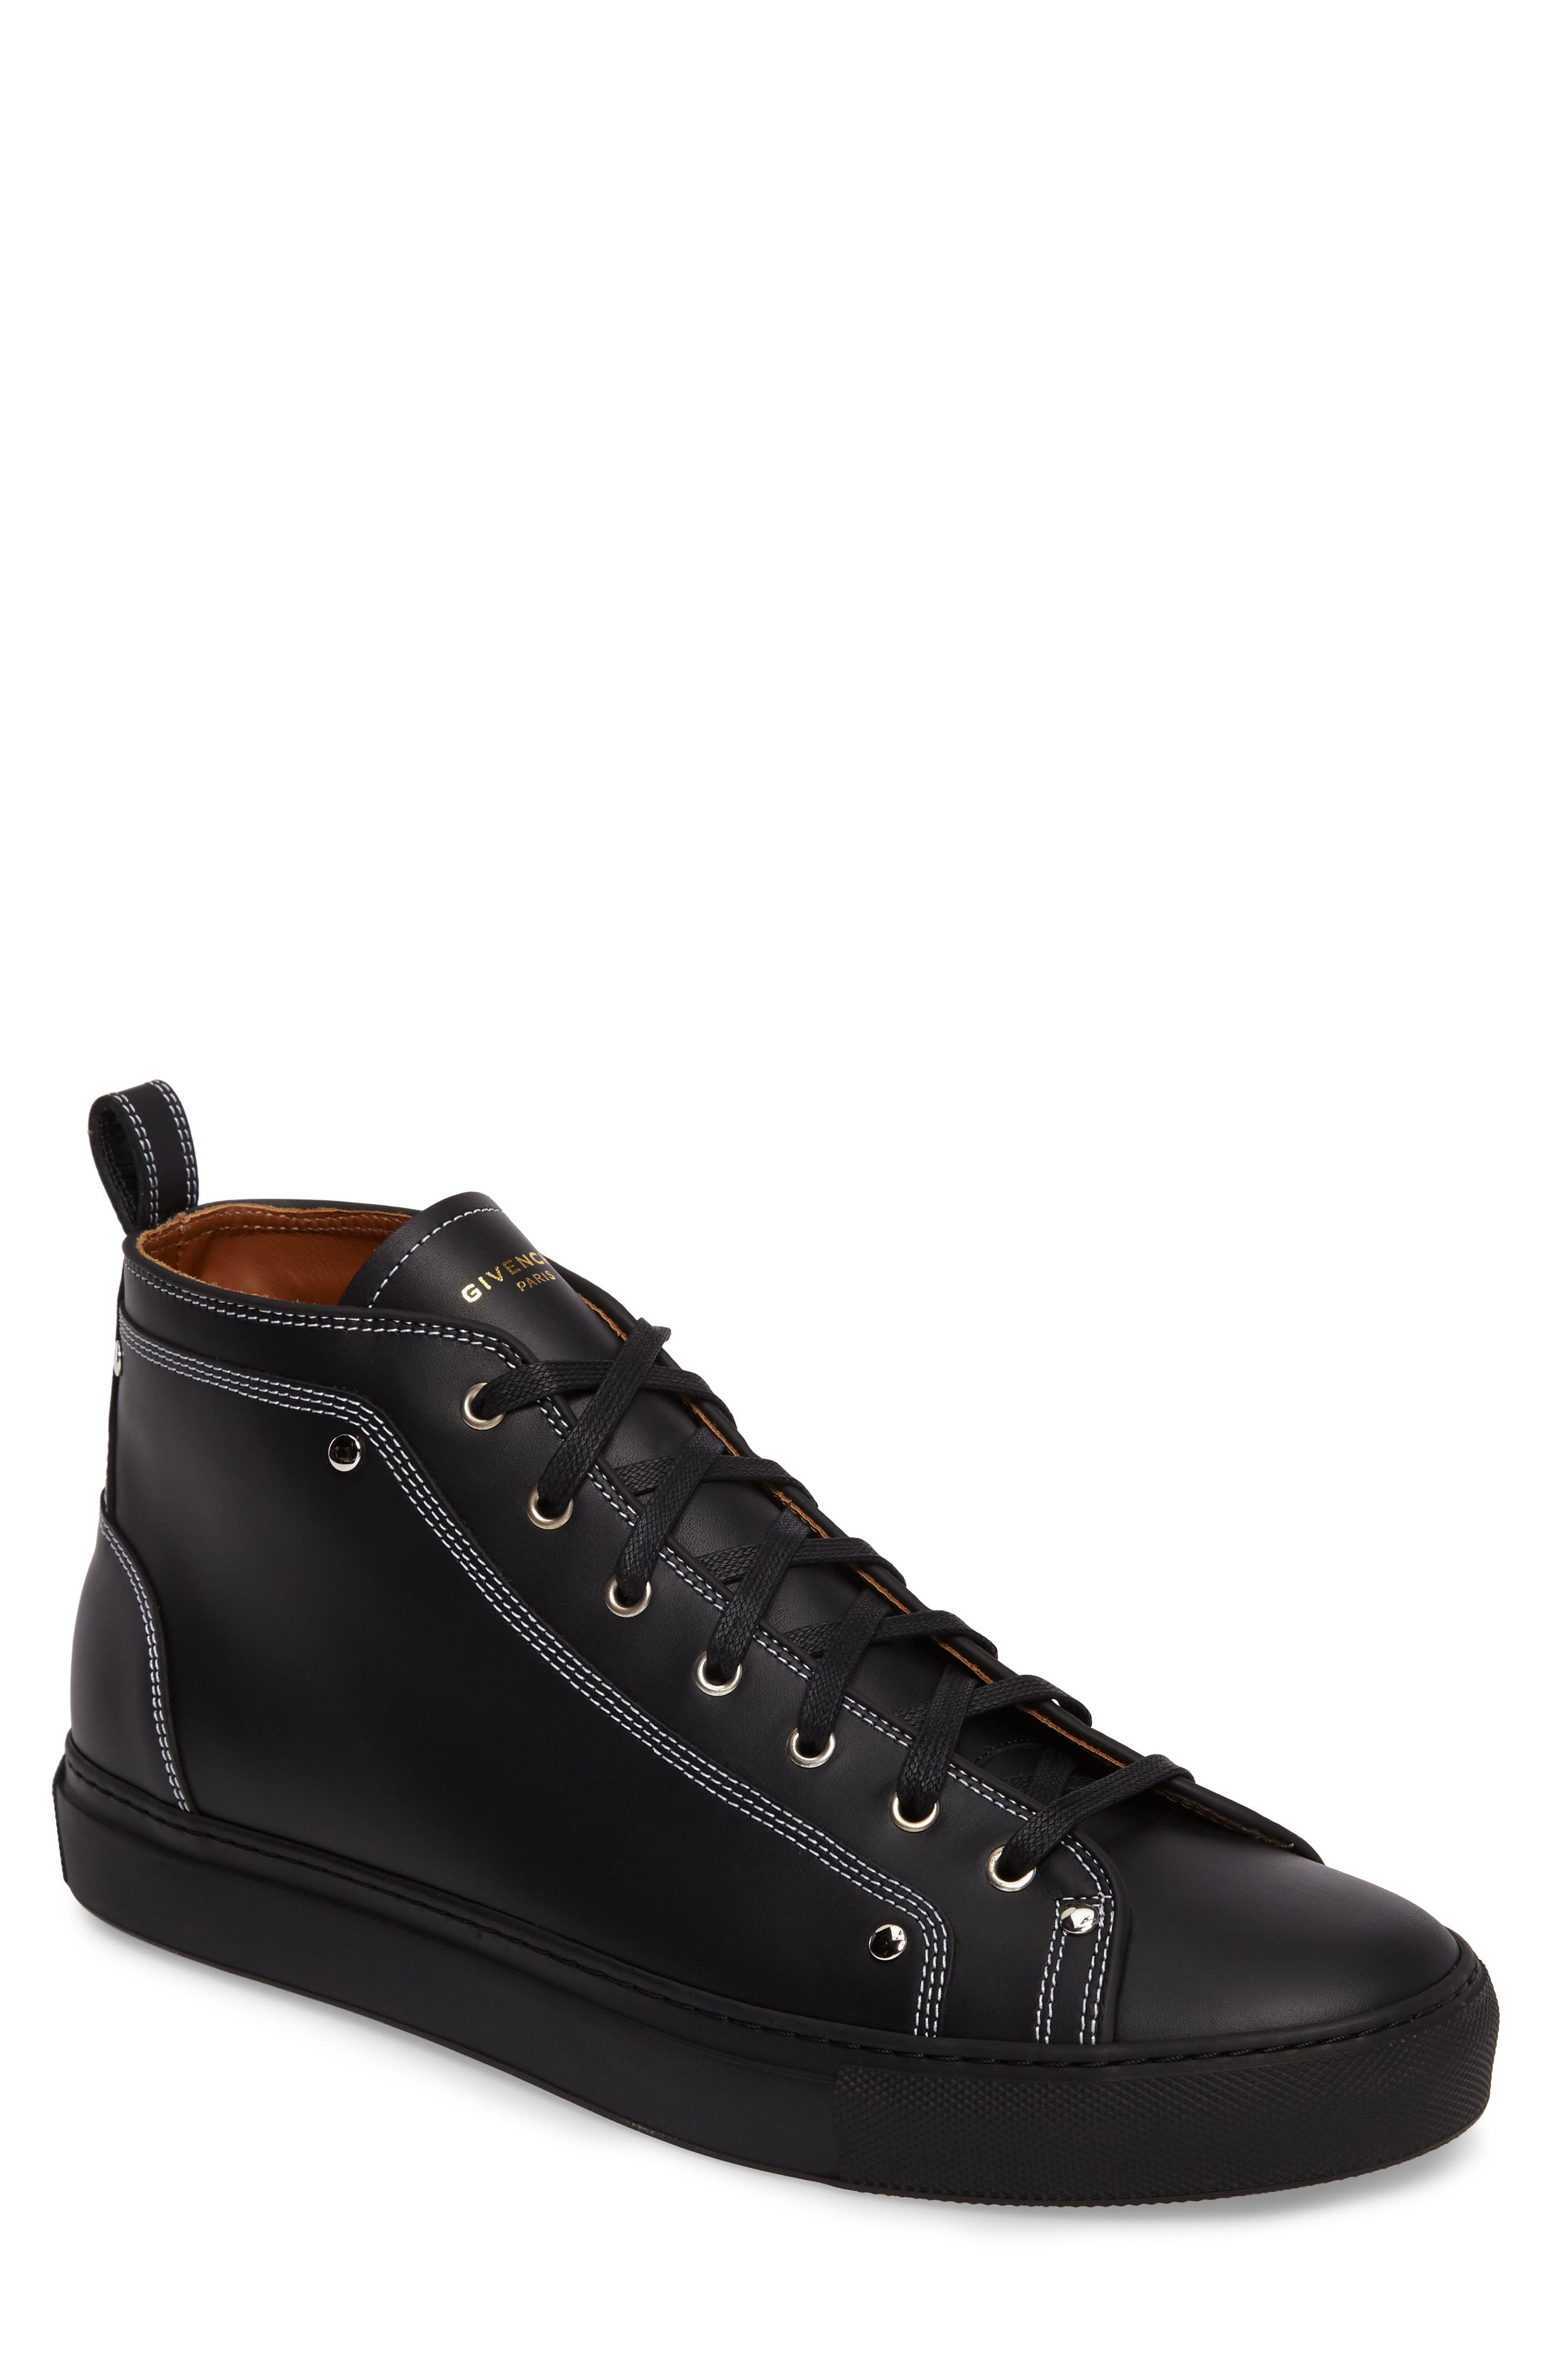 Alternate Image 1 Selected - Givenchy High Top Sneaker (Men)